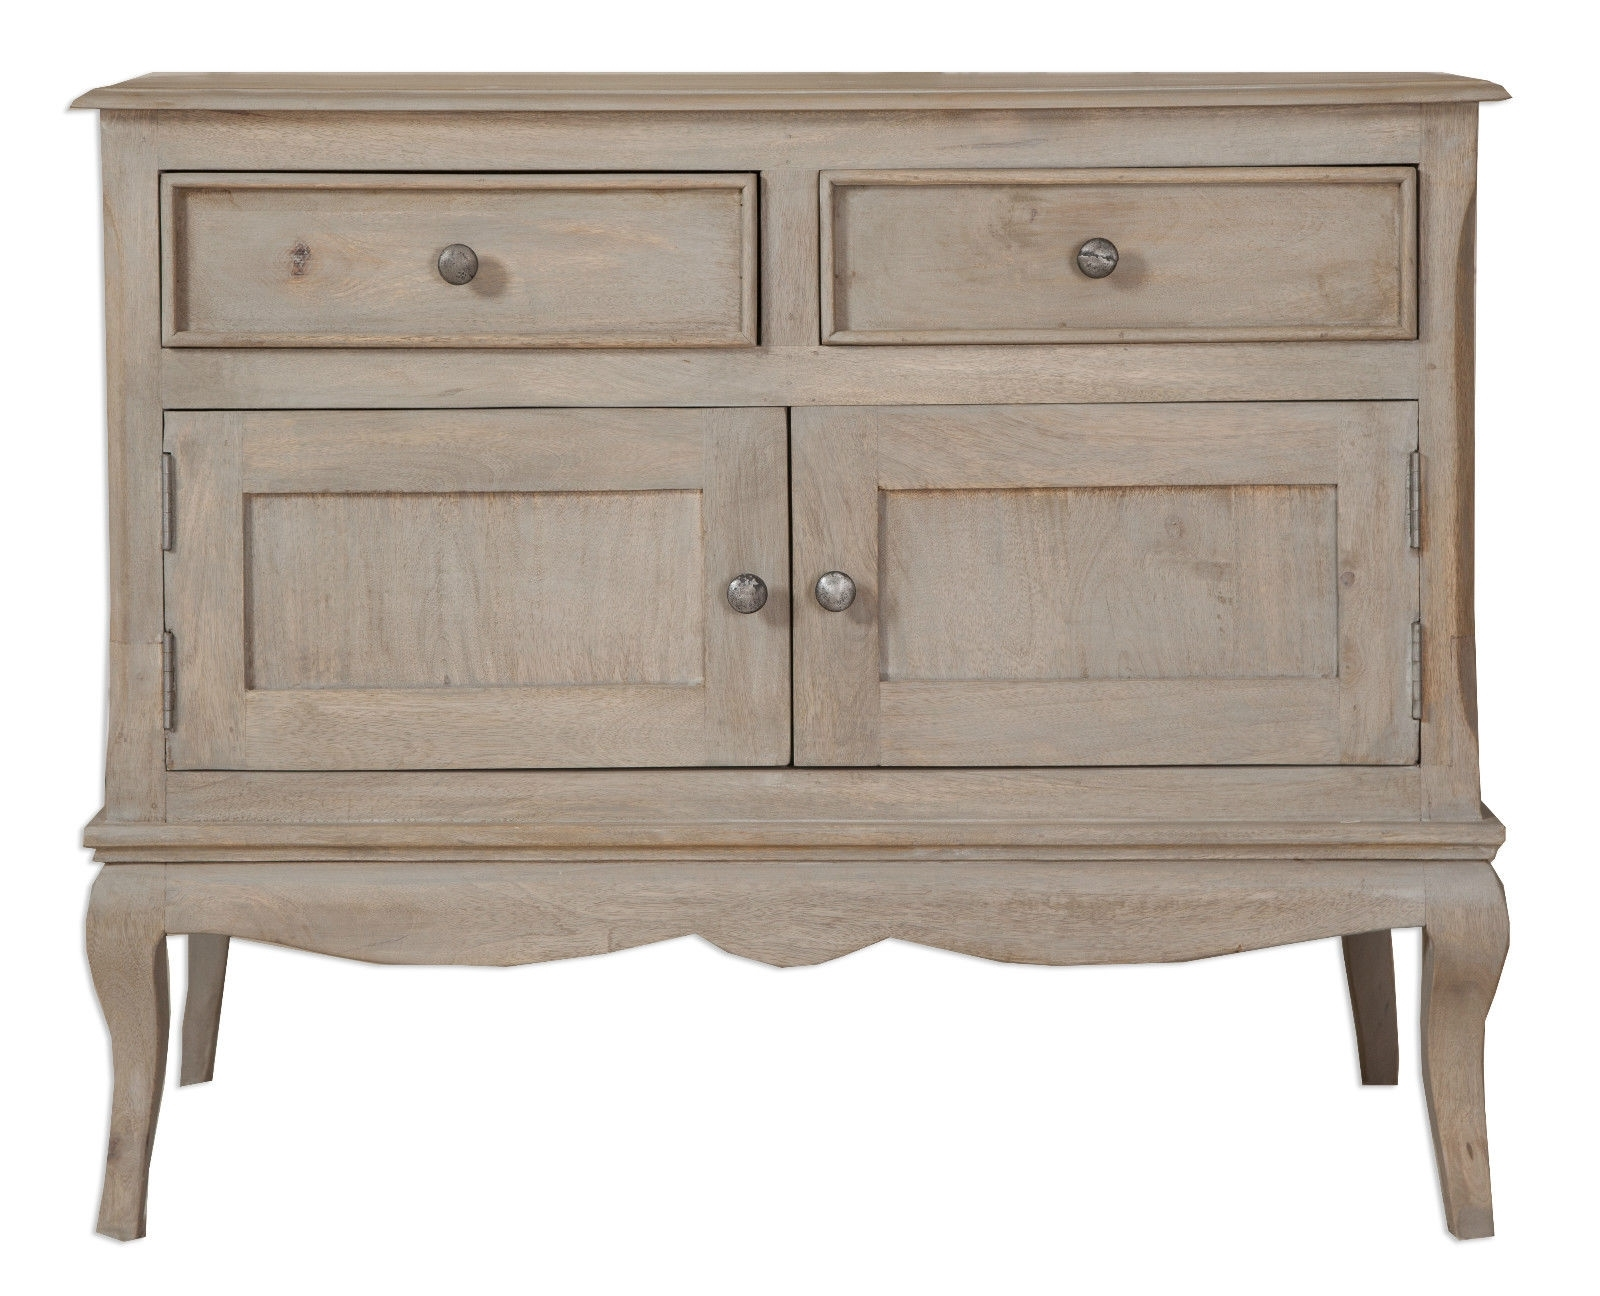 Loire French Grey Solid Mango Wood 2 Door / 2 Drawer Sideboard Inside Latest Mango Wood Grey 4 Drawer 4 Door Sideboards (View 15 of 20)